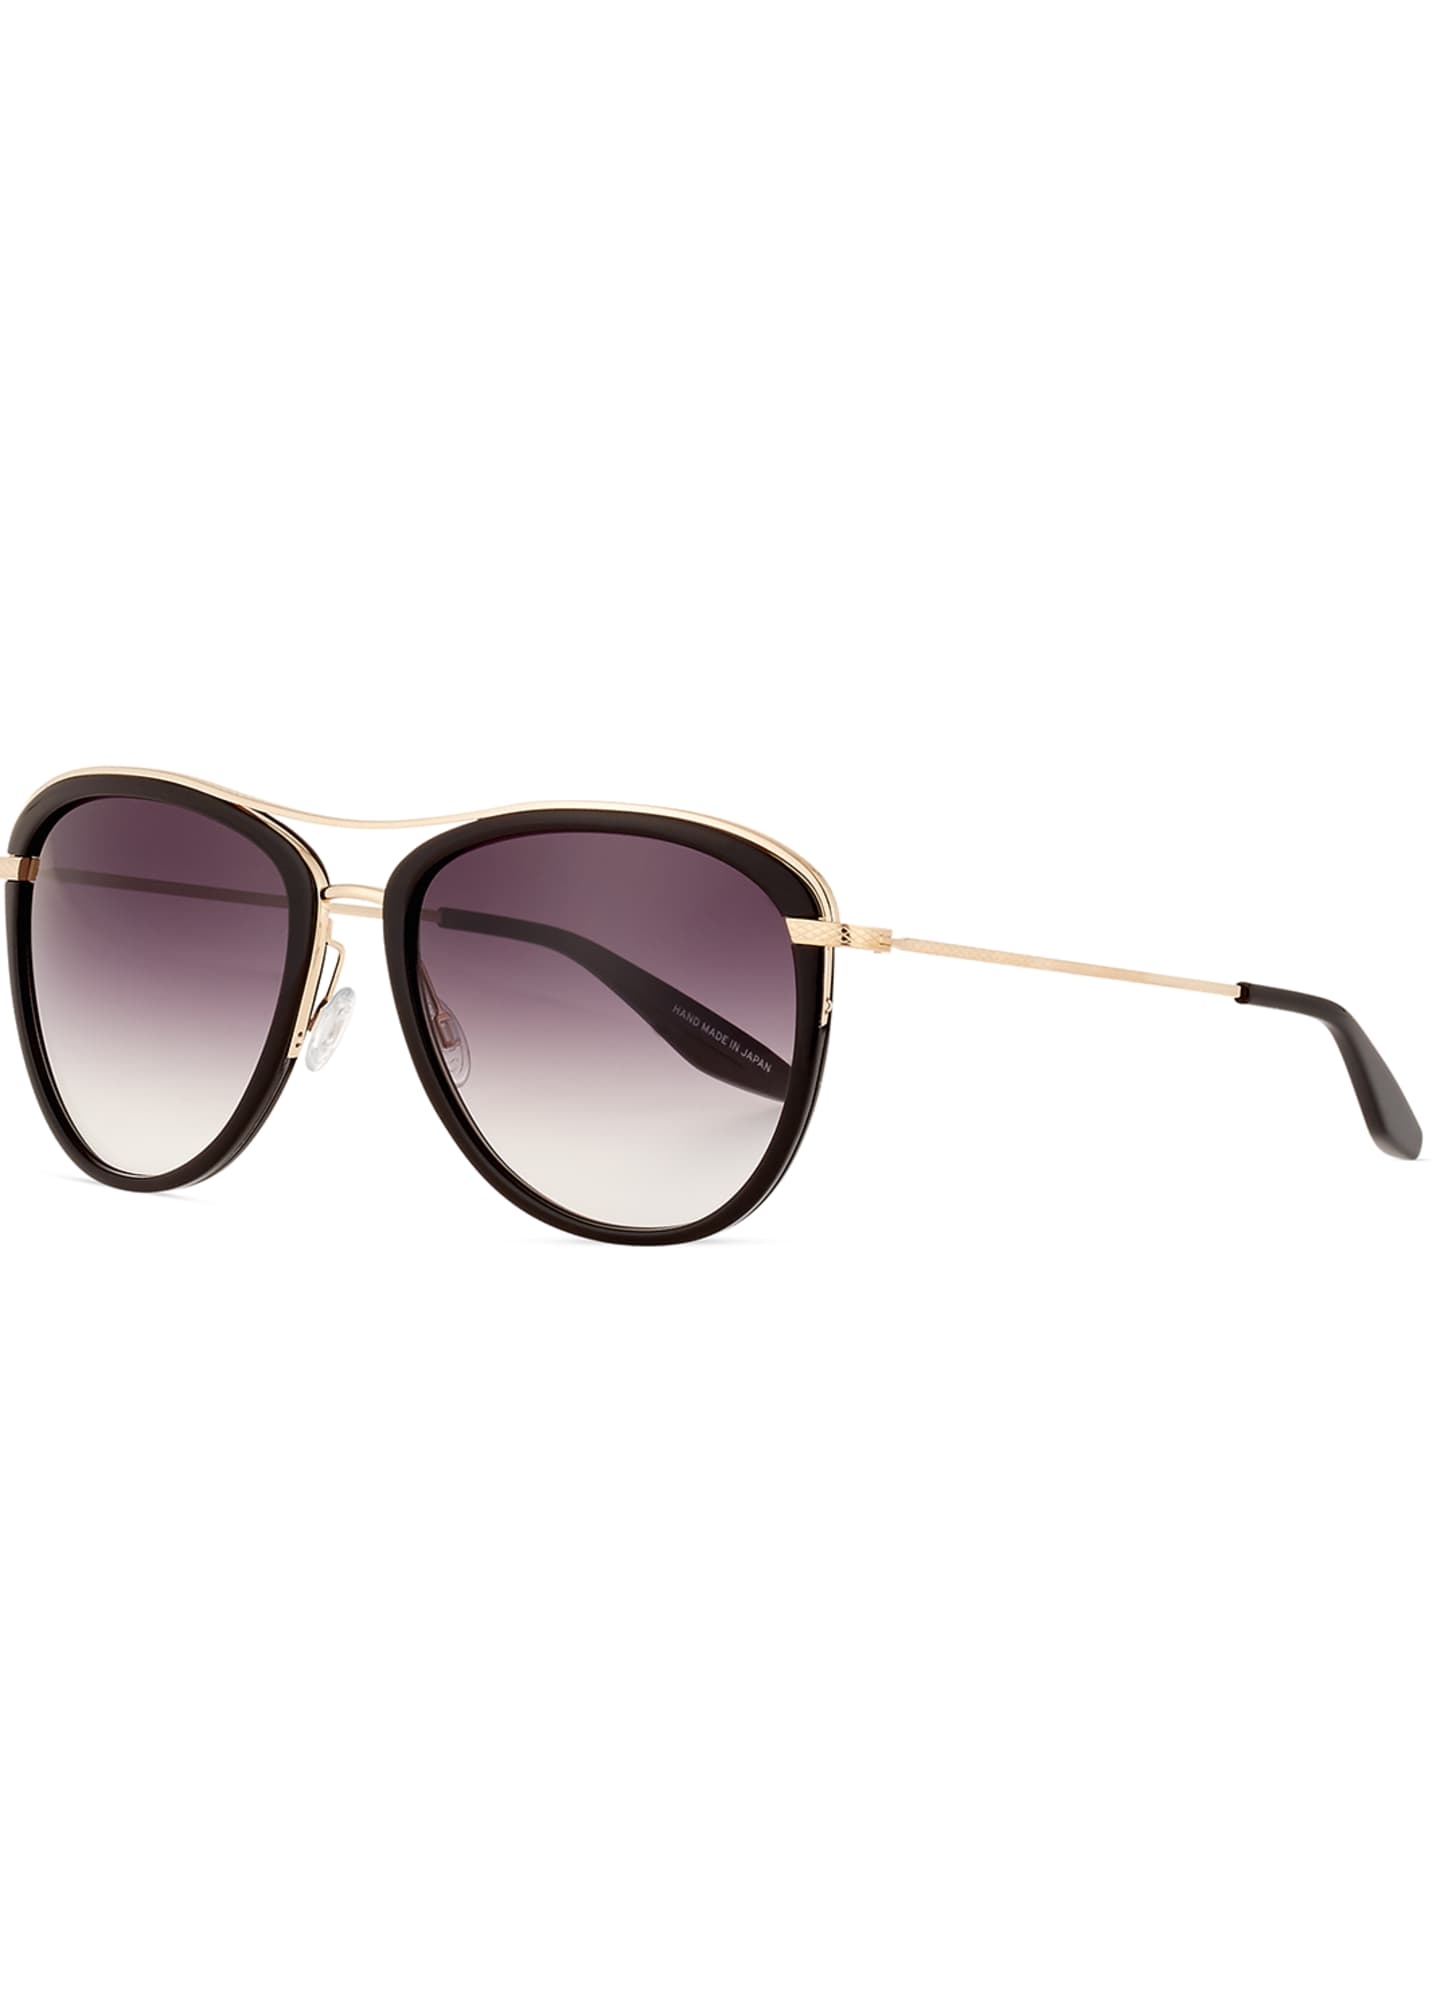 Barton Perreira Aviatress Universal-Fit Aviator Sunglasses